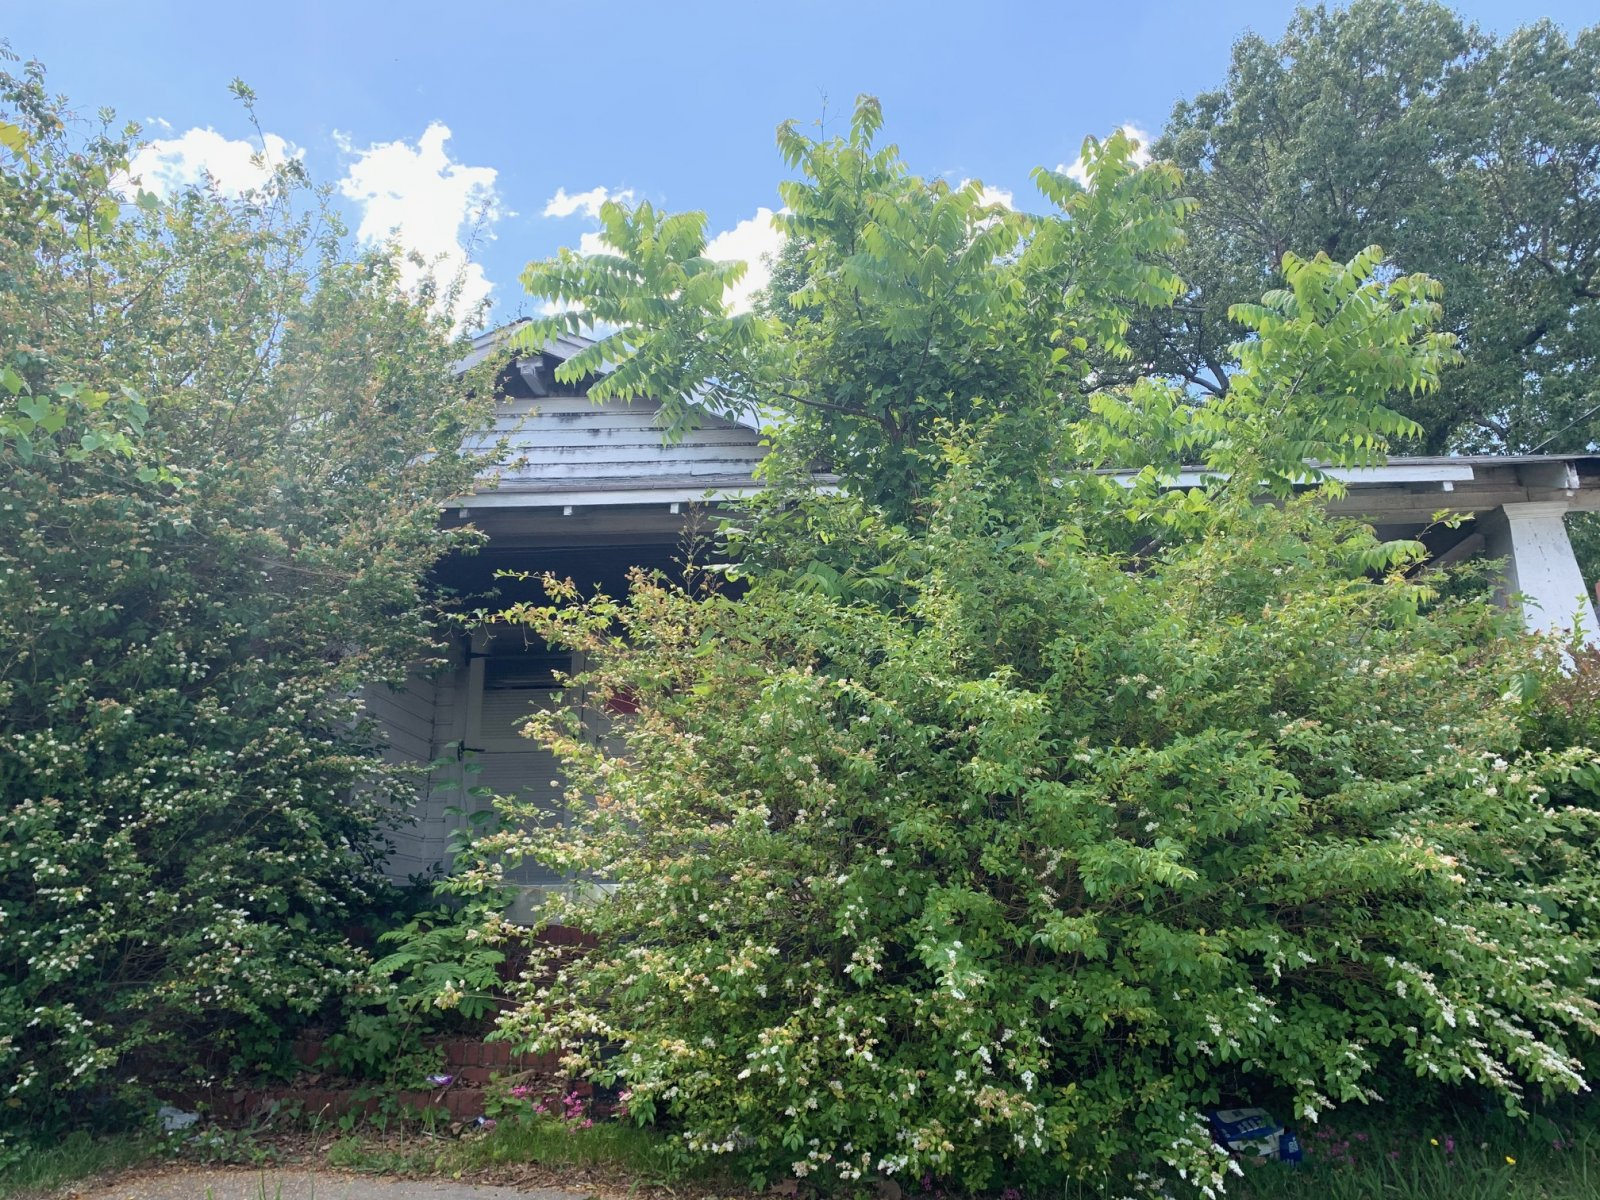 triad-discount-homes-high-point-NC-Investment-property-off-market-fire-damaged